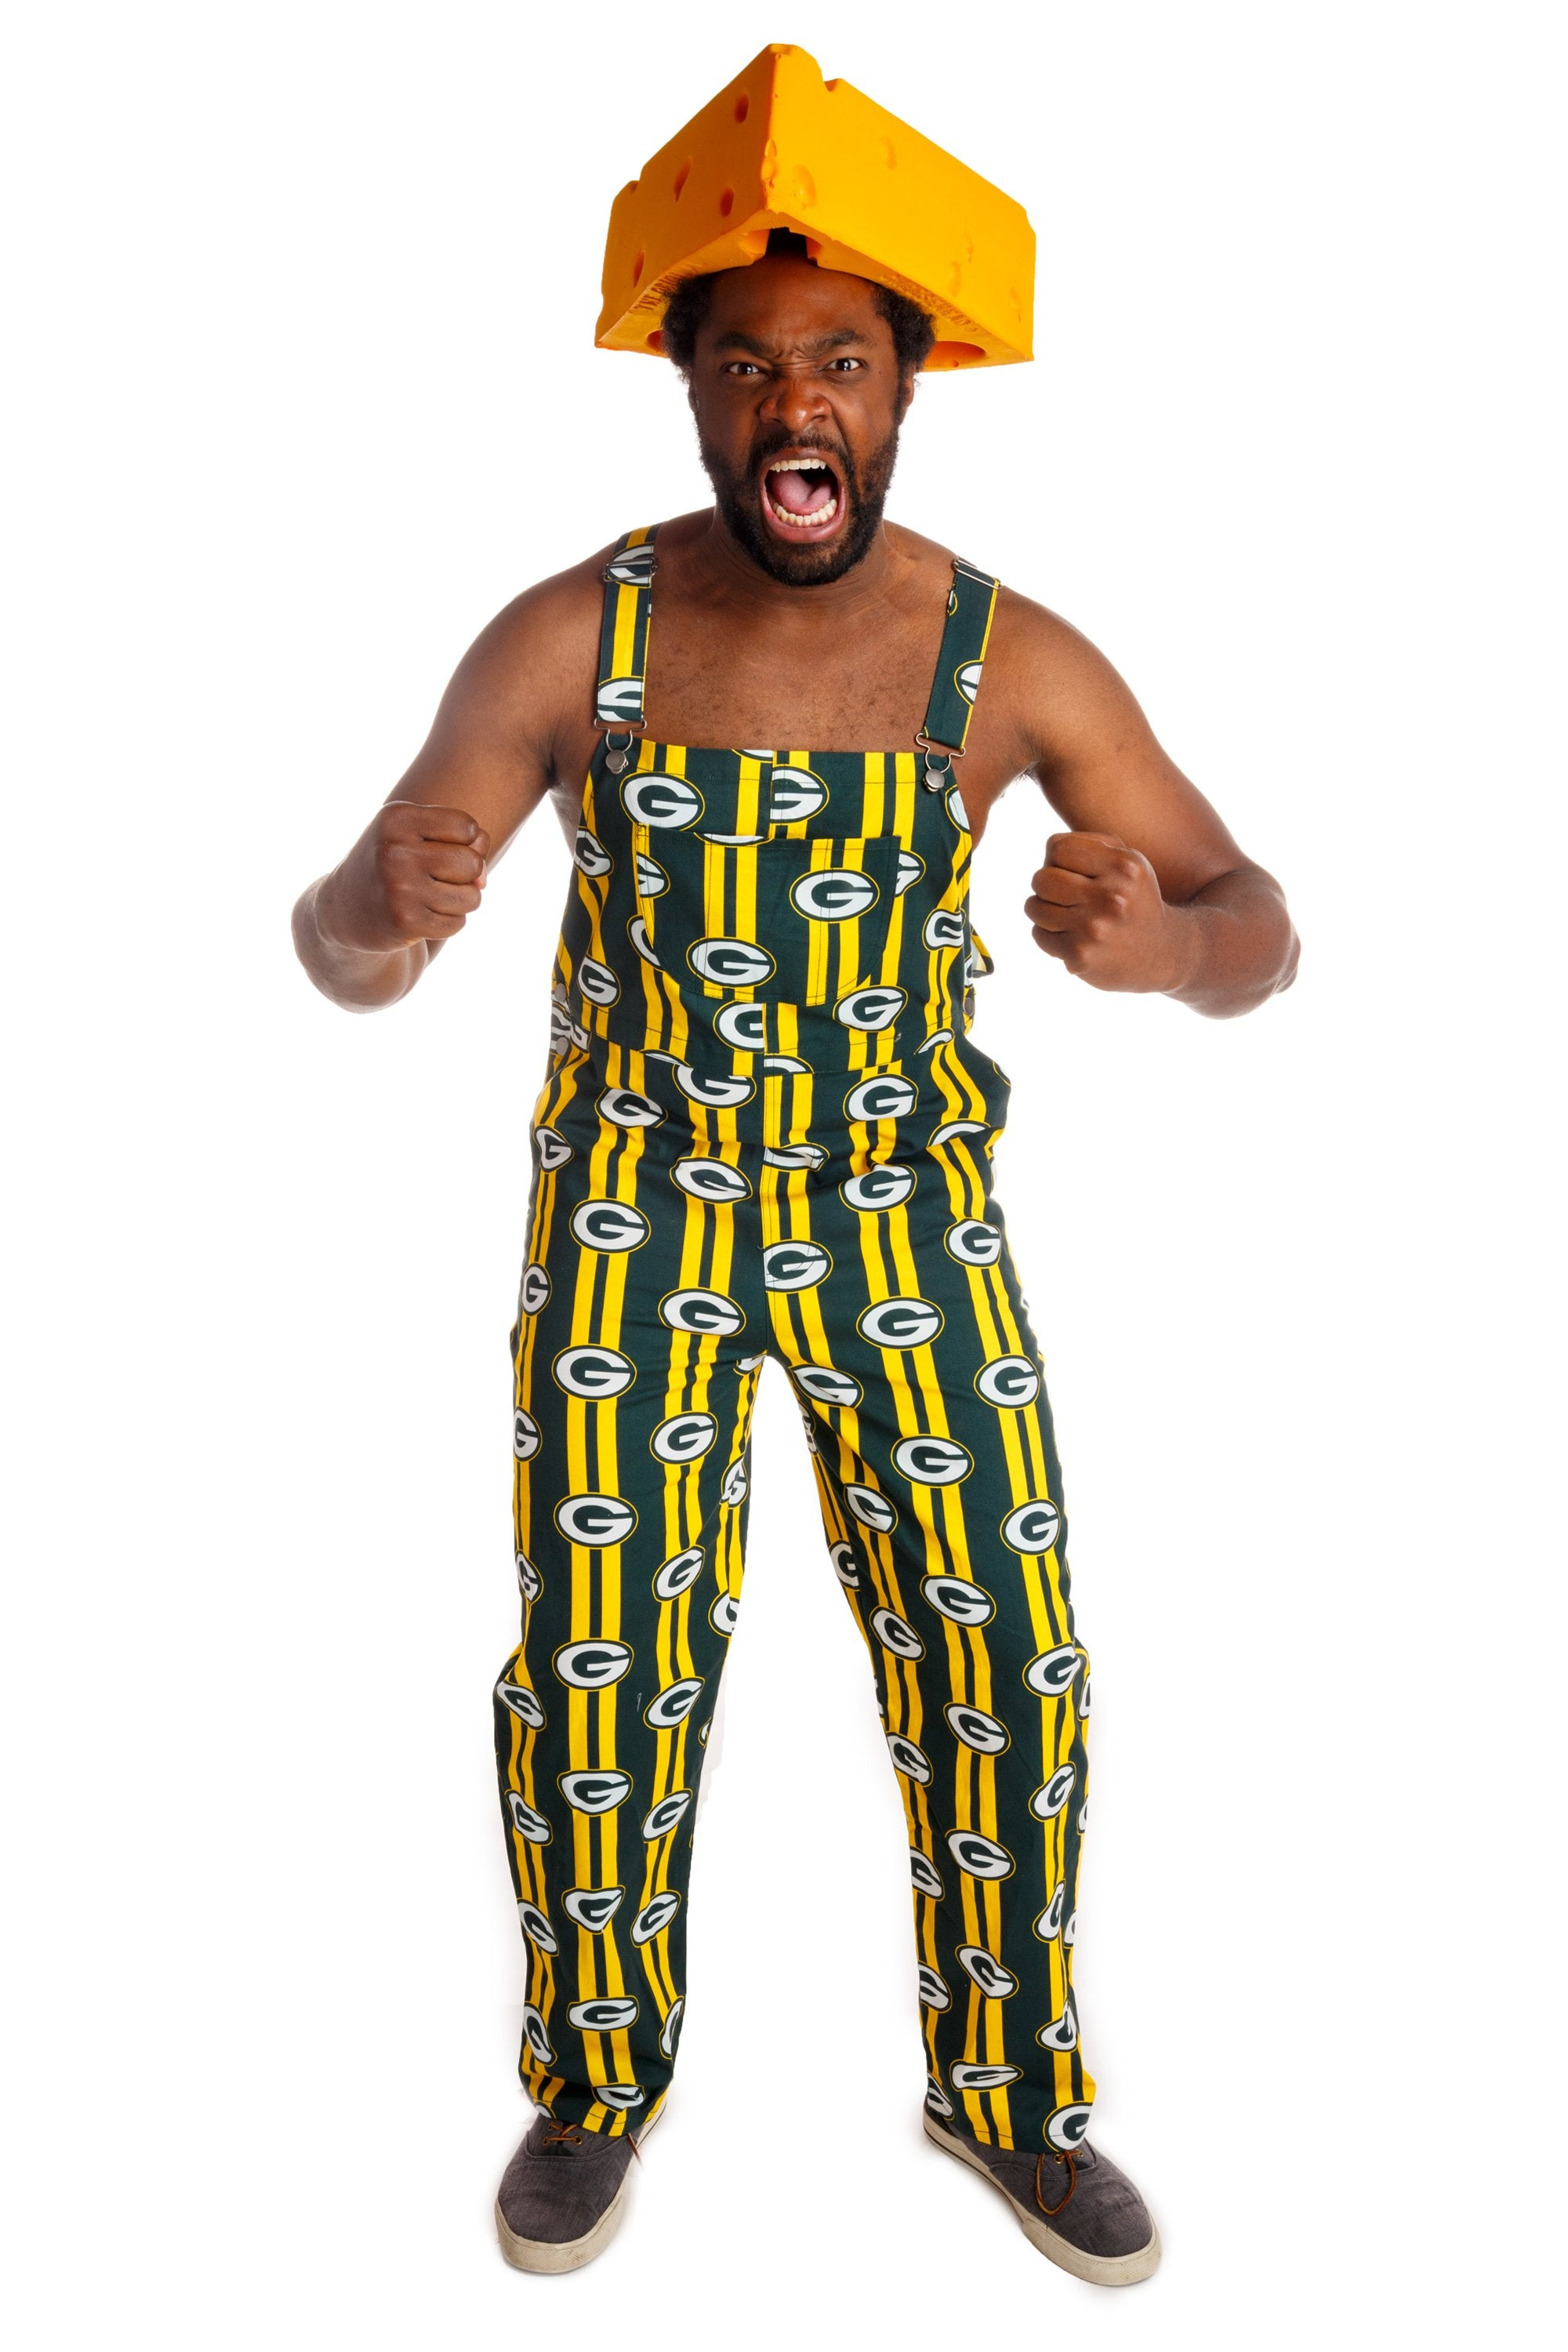 The Green Bay Packers Unisex NFL Overalls